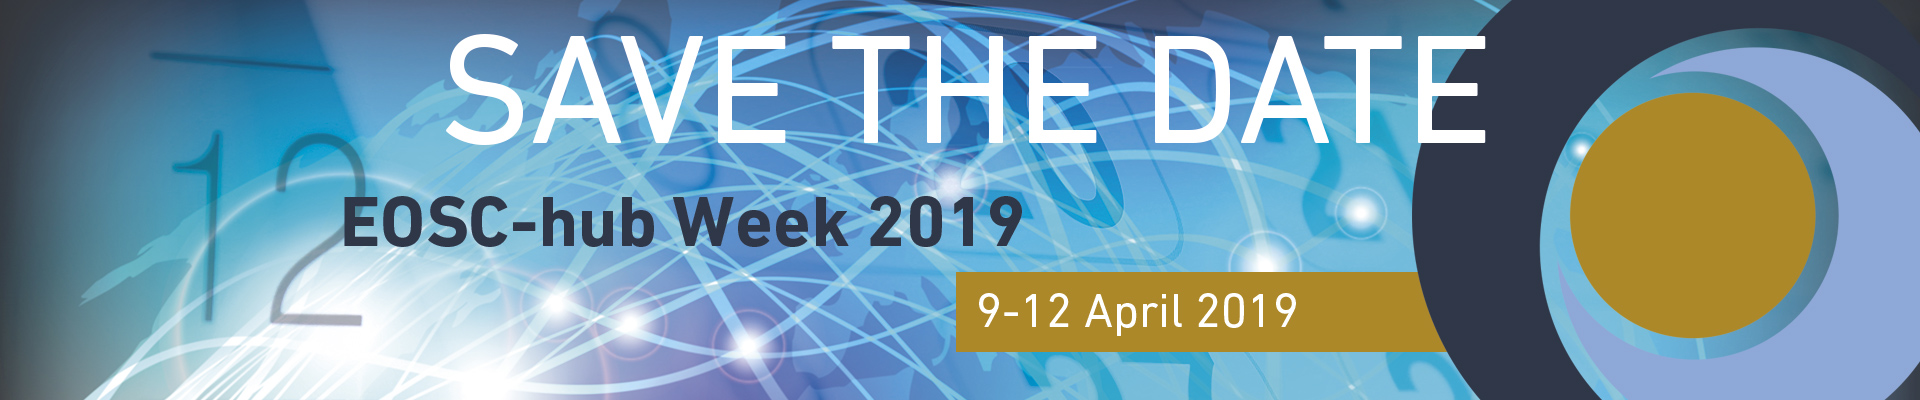 Save the Date - EOSC-hub Week 2019